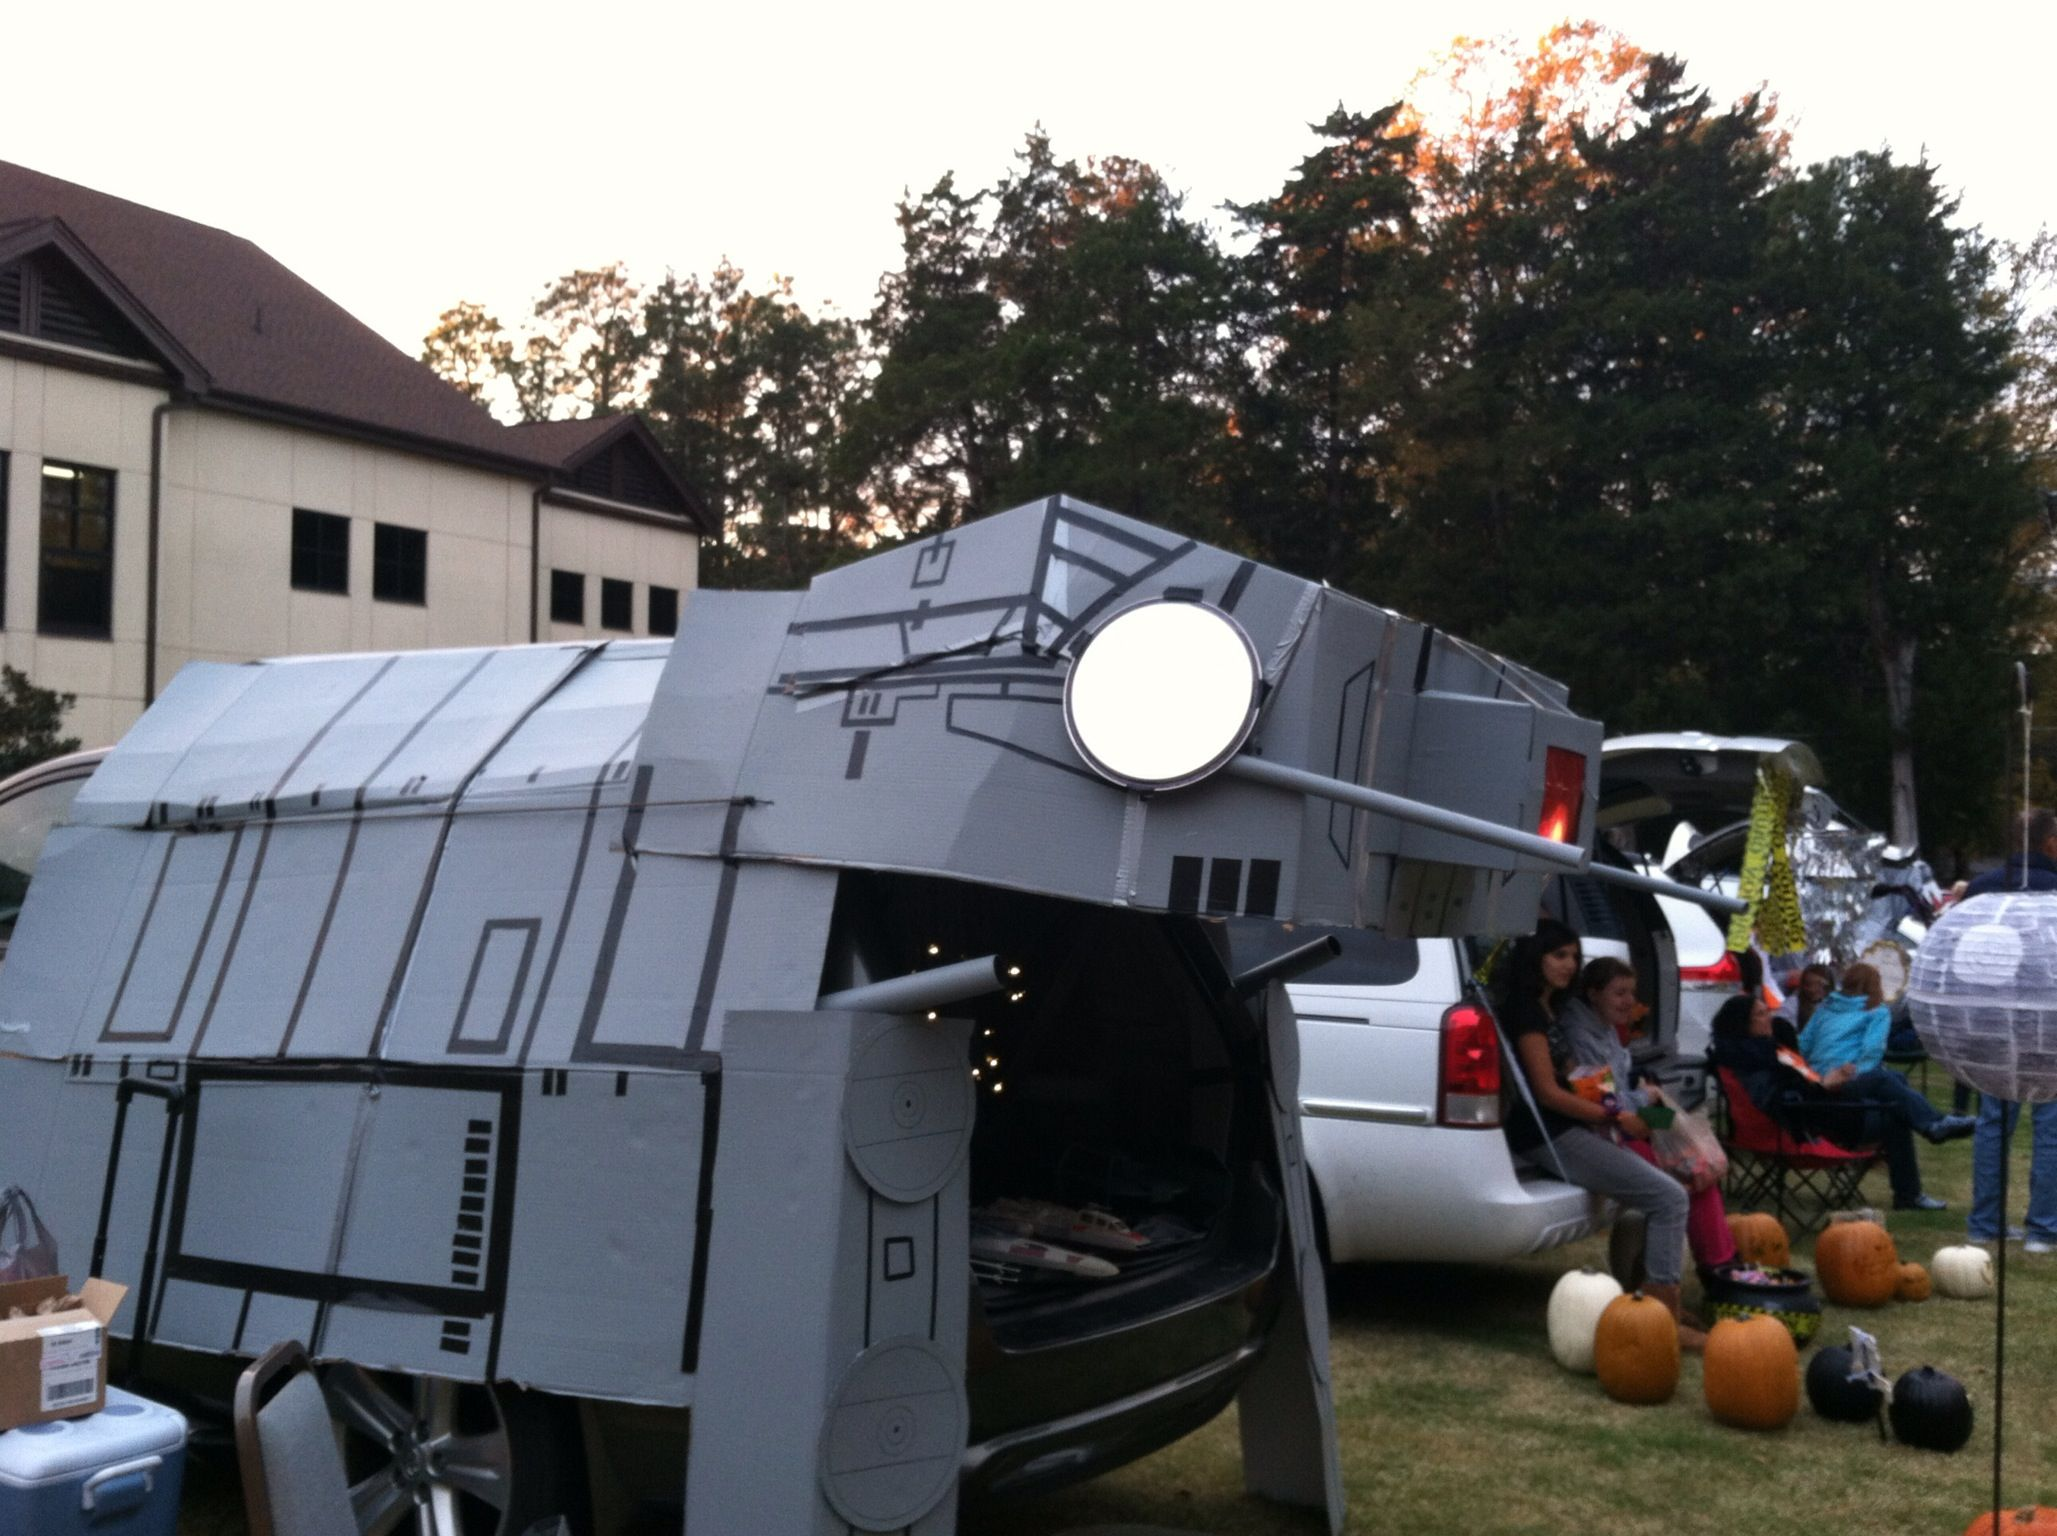 Star Wars At At For Trunk Or Treat Halloween Trunk Or